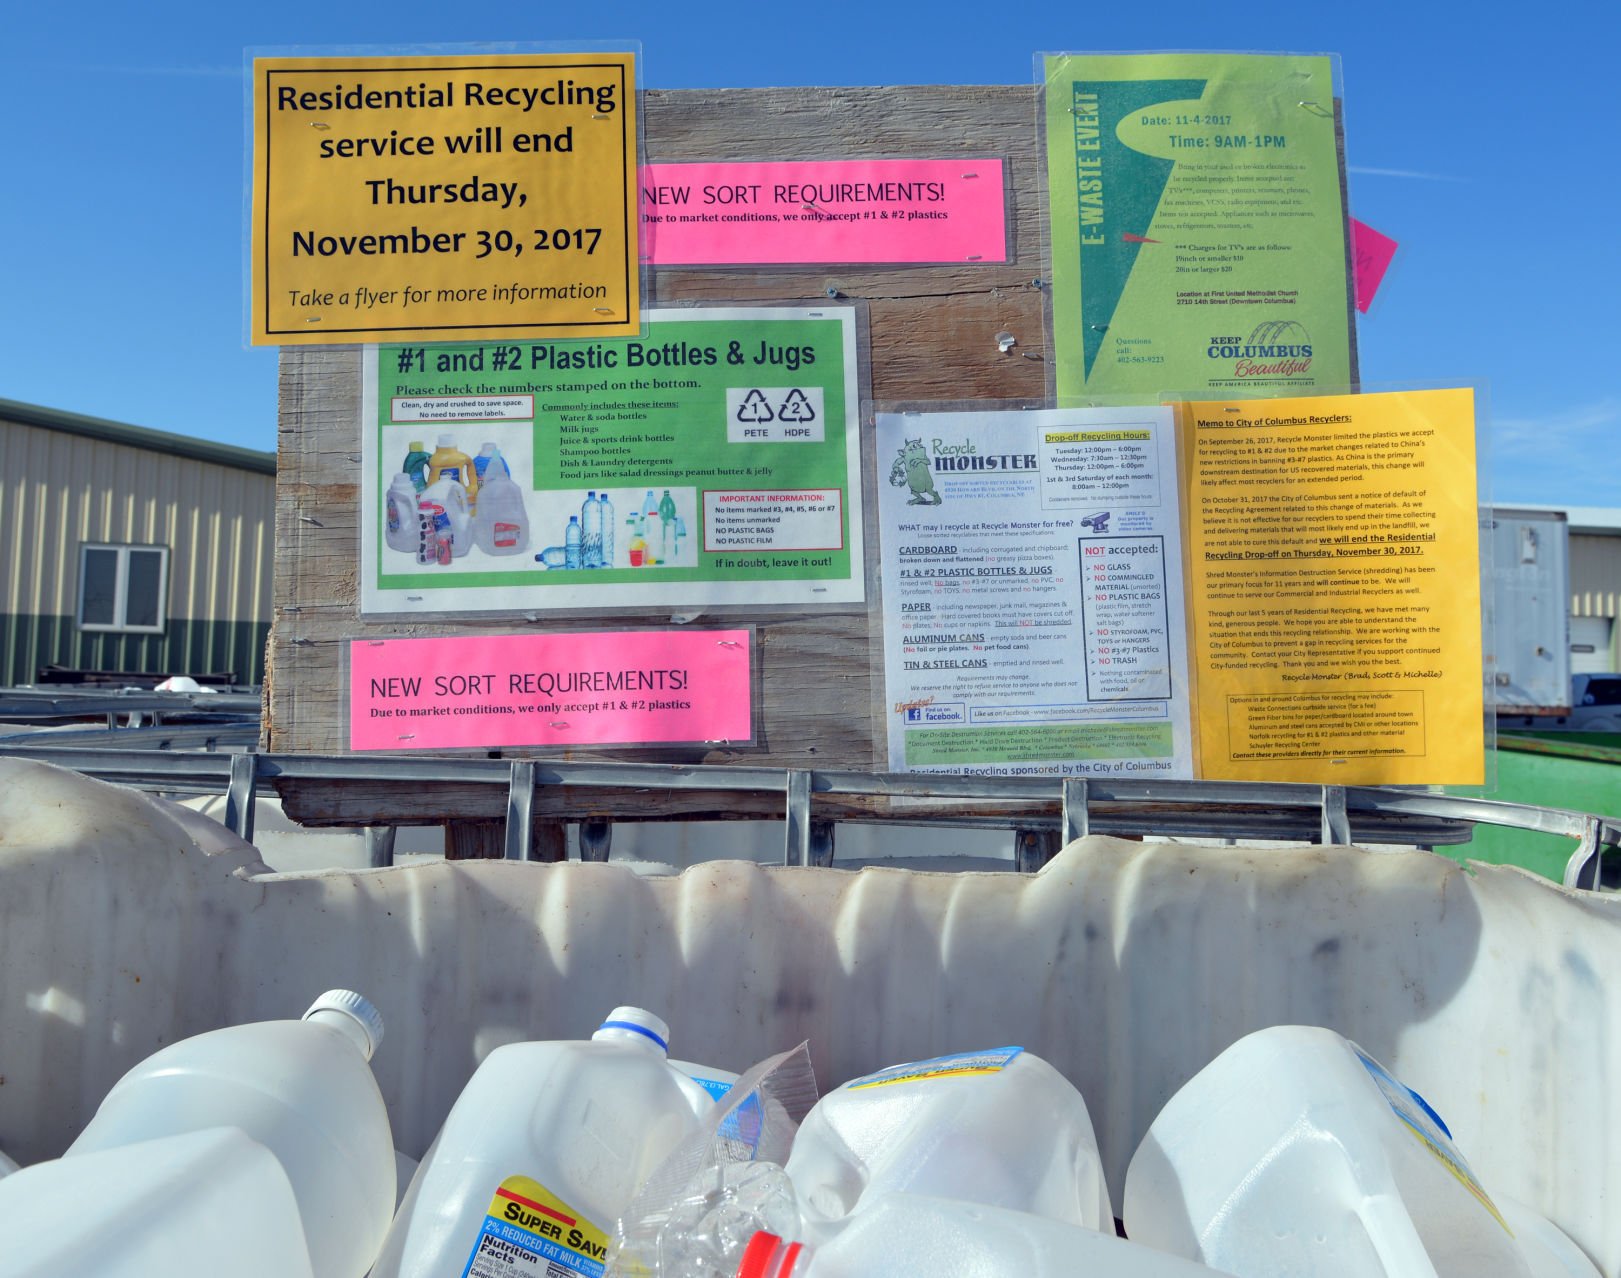 City open to all options for residential recycling   Local     Recycling